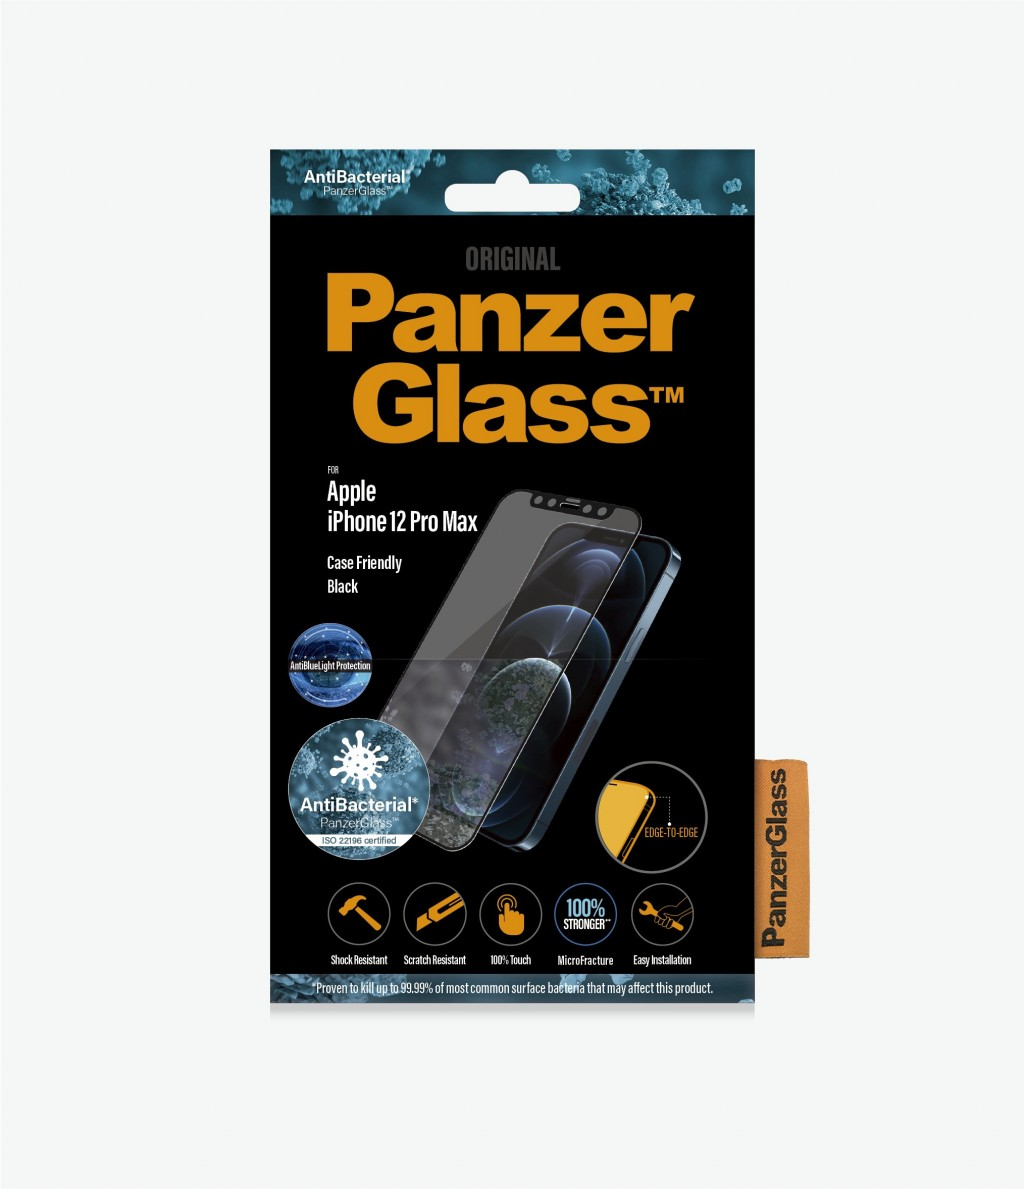 PanzerGlass Apple, iPhone 12 Pro Max, Antibacterial glass, Black, Case Friendly